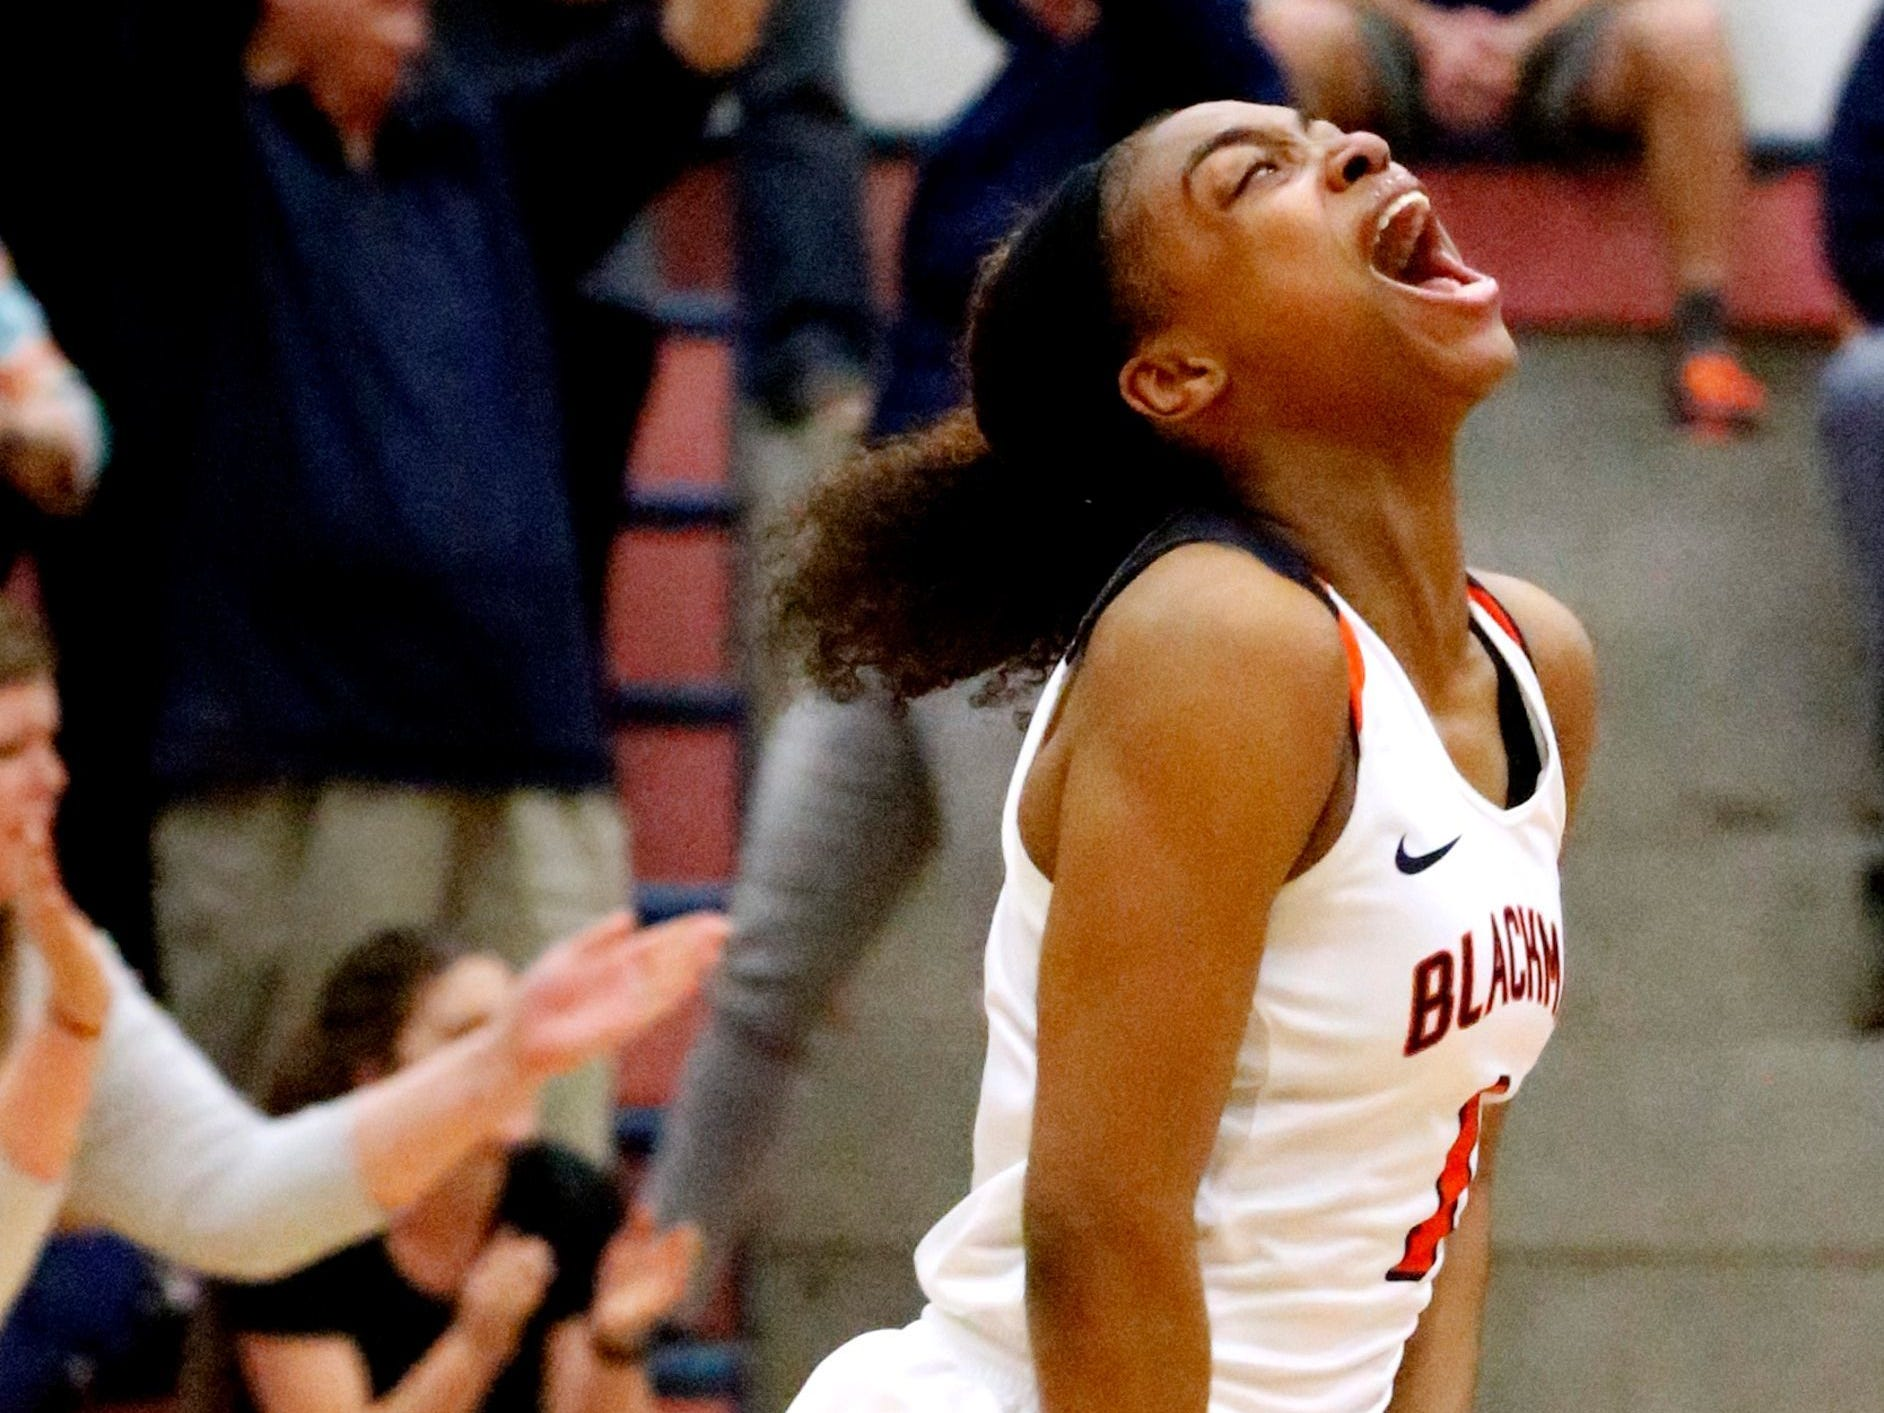 Blackman's Jaleah Goff reacts after her squad's 51-47 win over Stewarts Creek in the Region 4-AAA semifinals Monday.